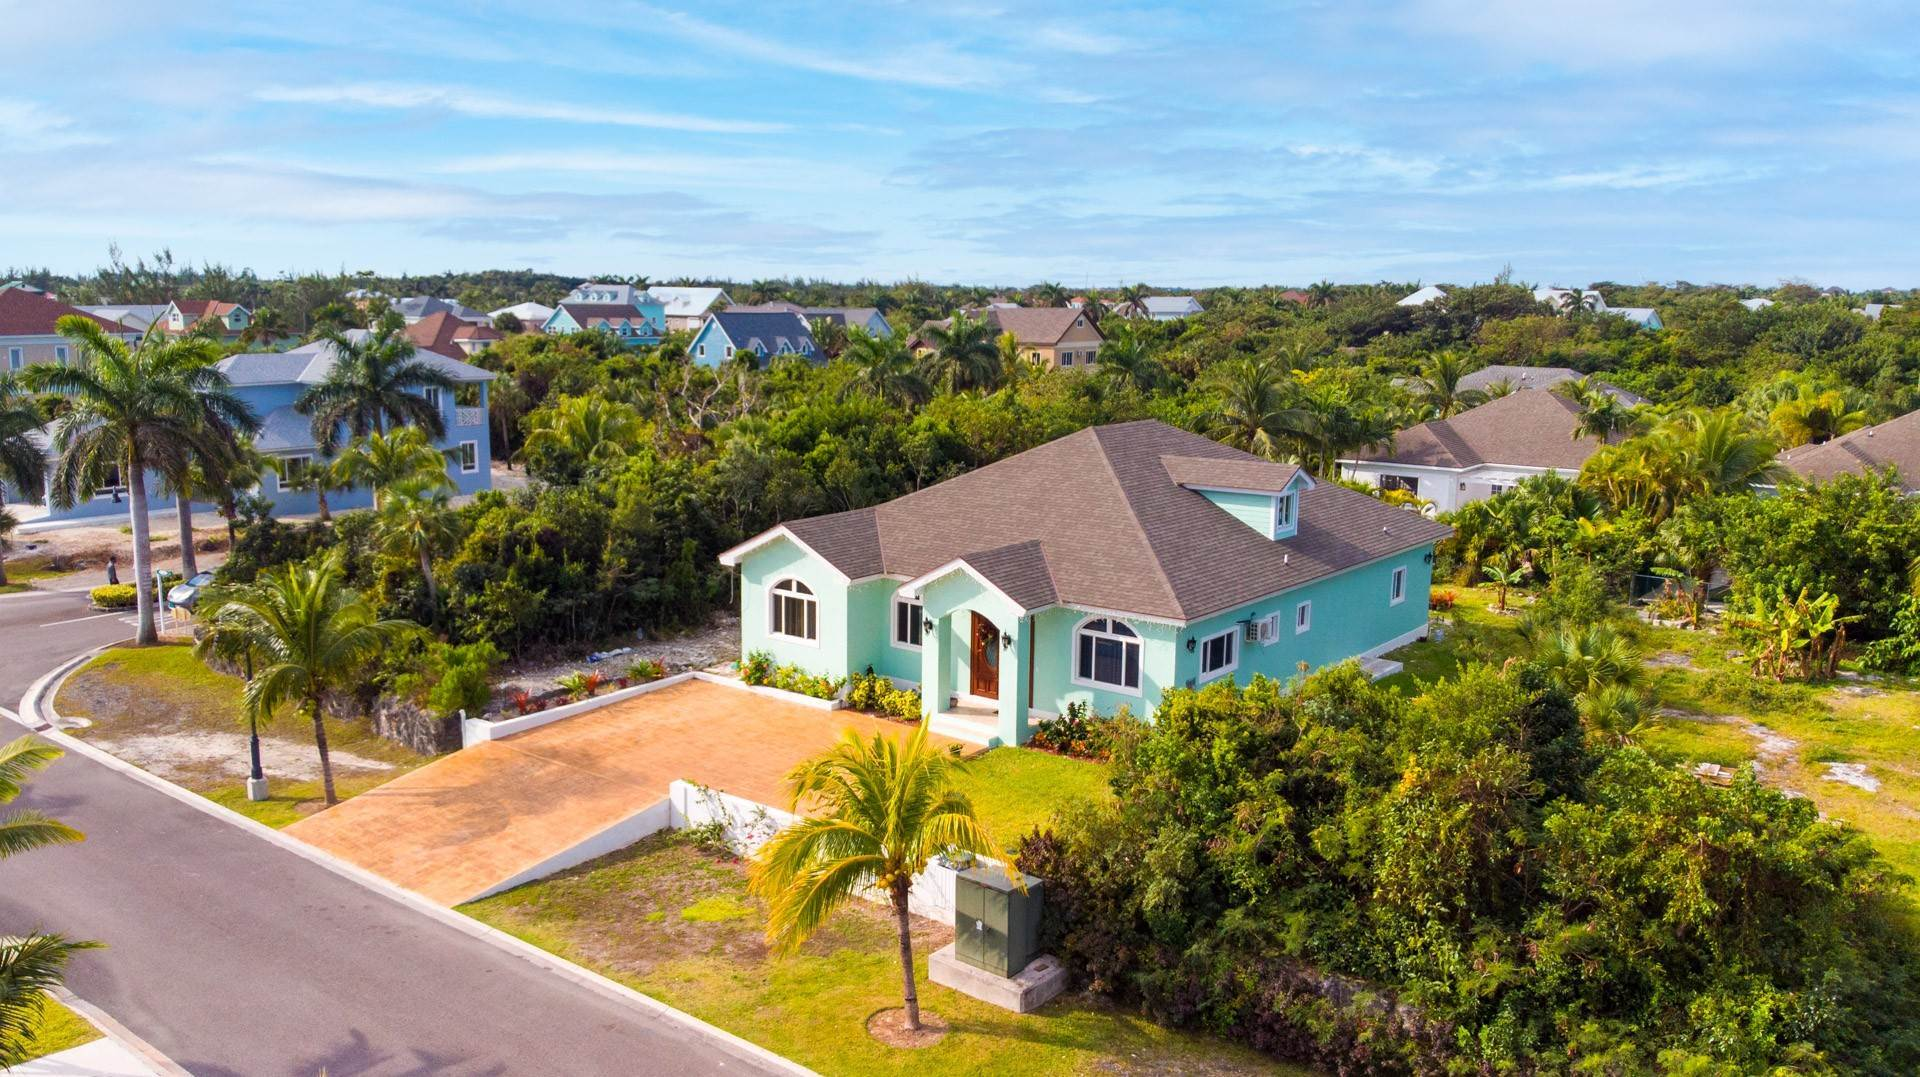 Single Family Homes for Sale at Villa Greenway House for Sale - MLS 41427 Charlotteville, Nassau And Paradise Island, Bahamas